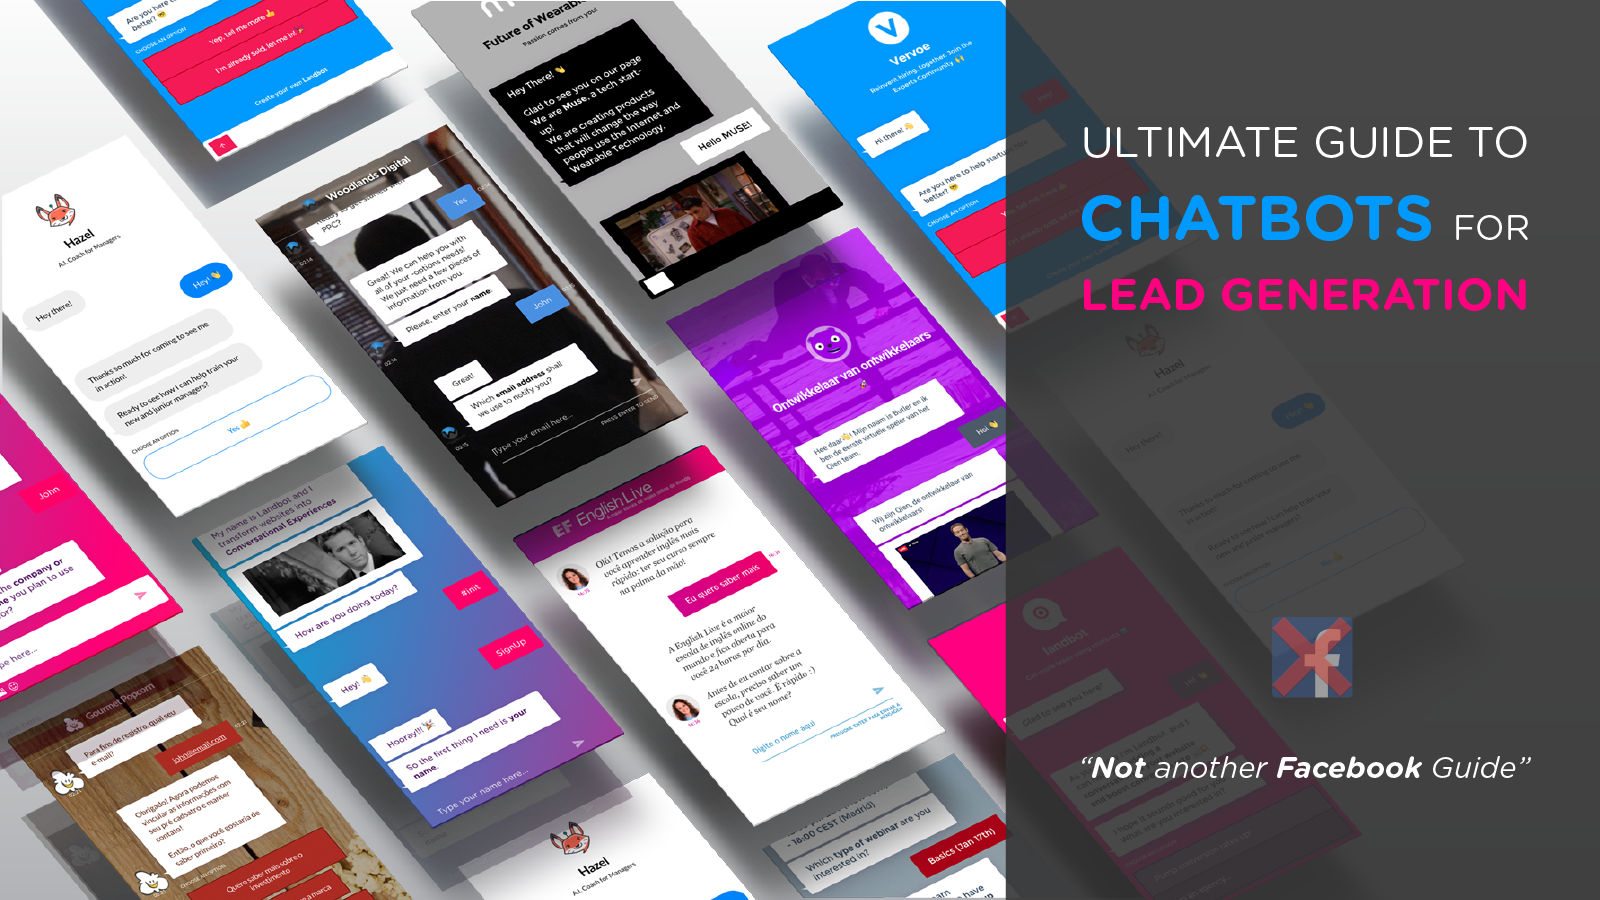 The Ultimate Guide to Chatbots for Lead Generation - The